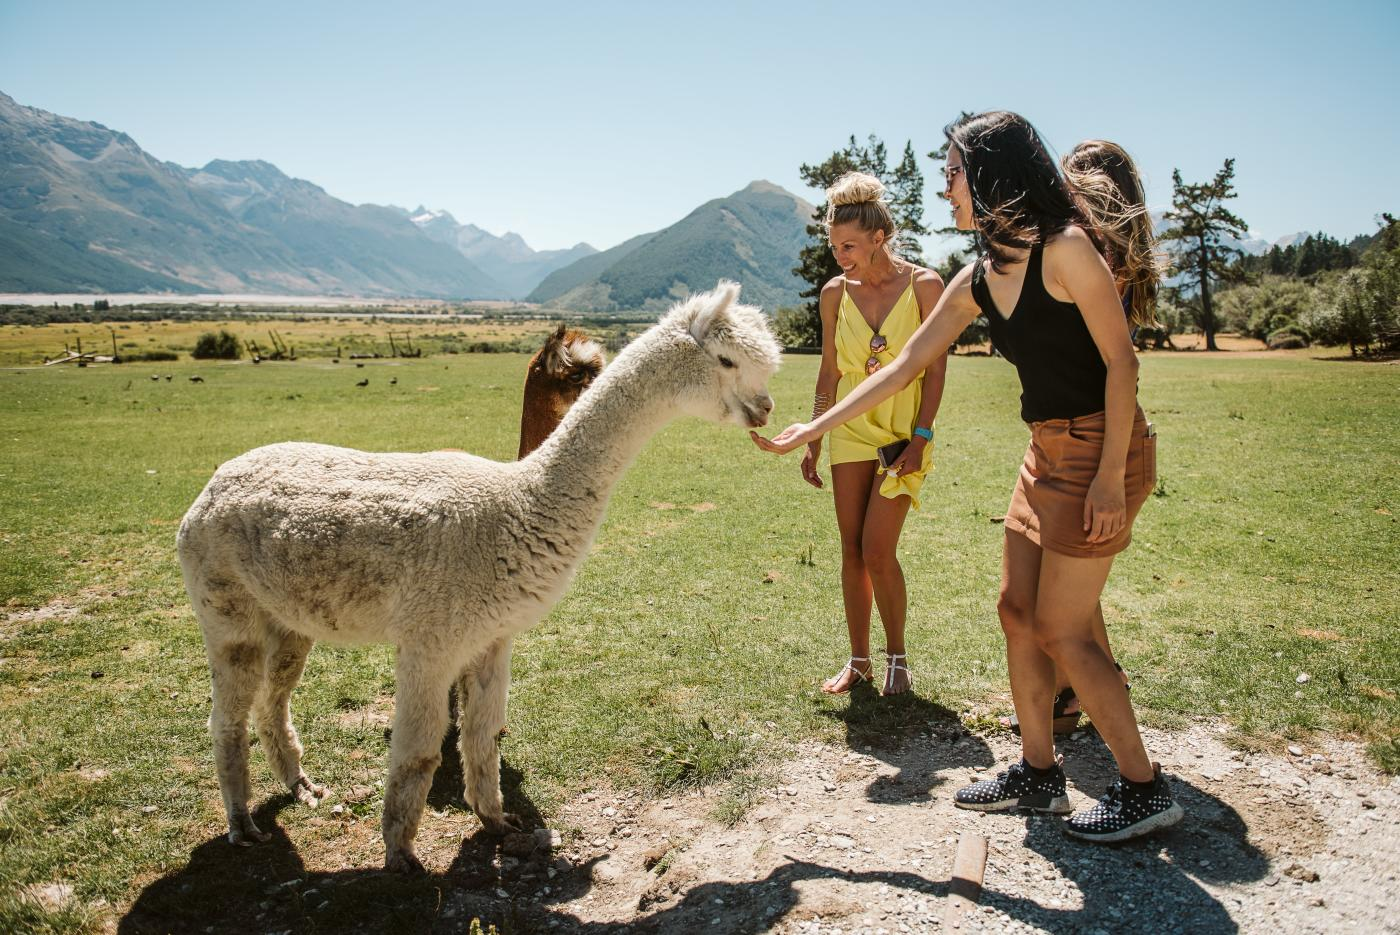 Visiting the Glenorchy Animal Experience with Queenstown Expeditions